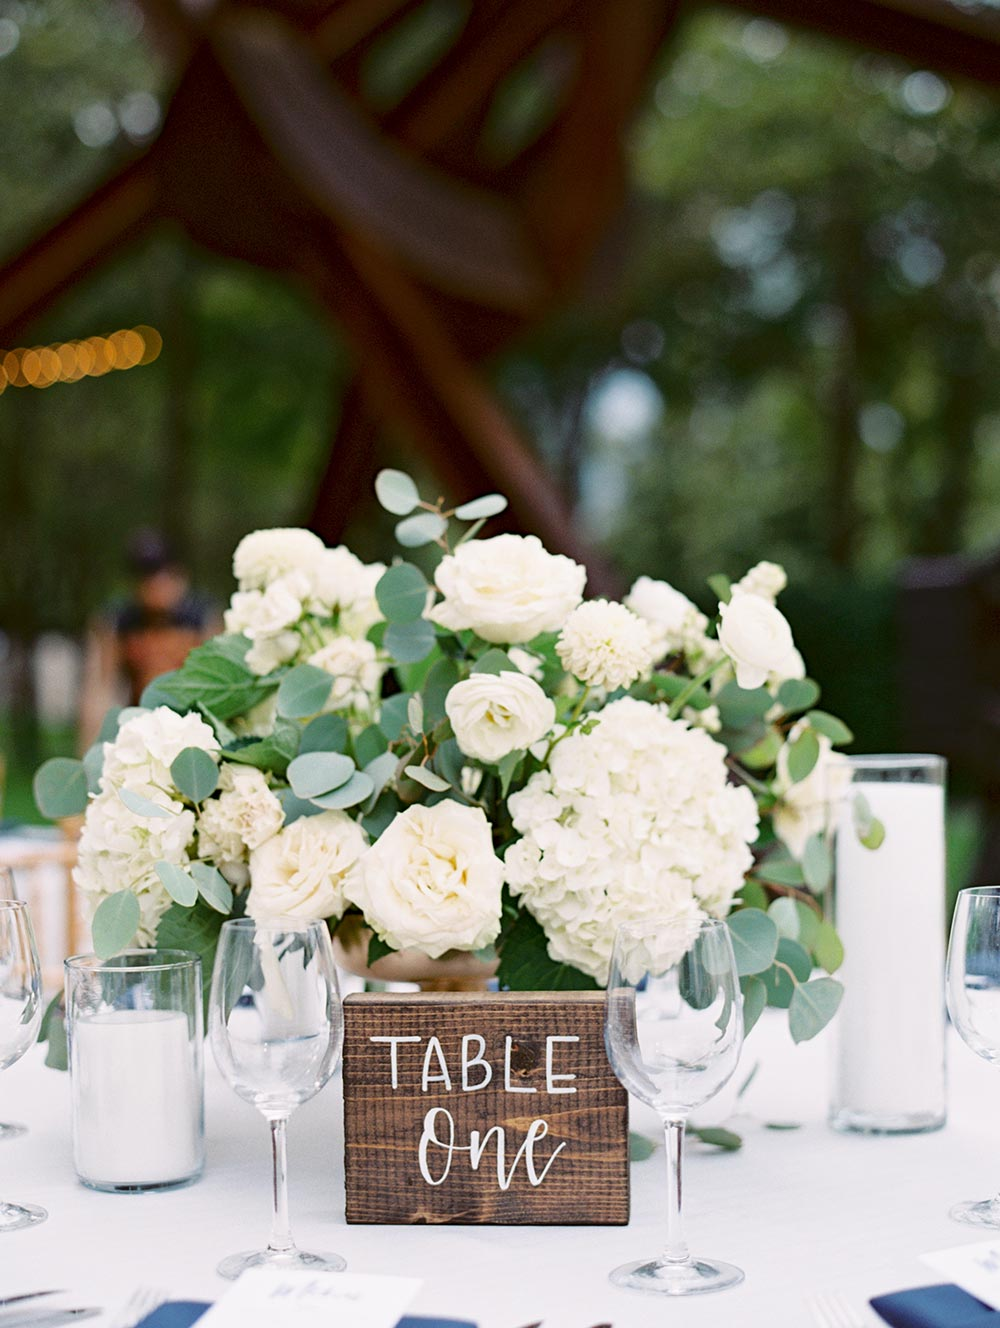 hydrangea and garden rose centerpieces with wooden wedding table numbers